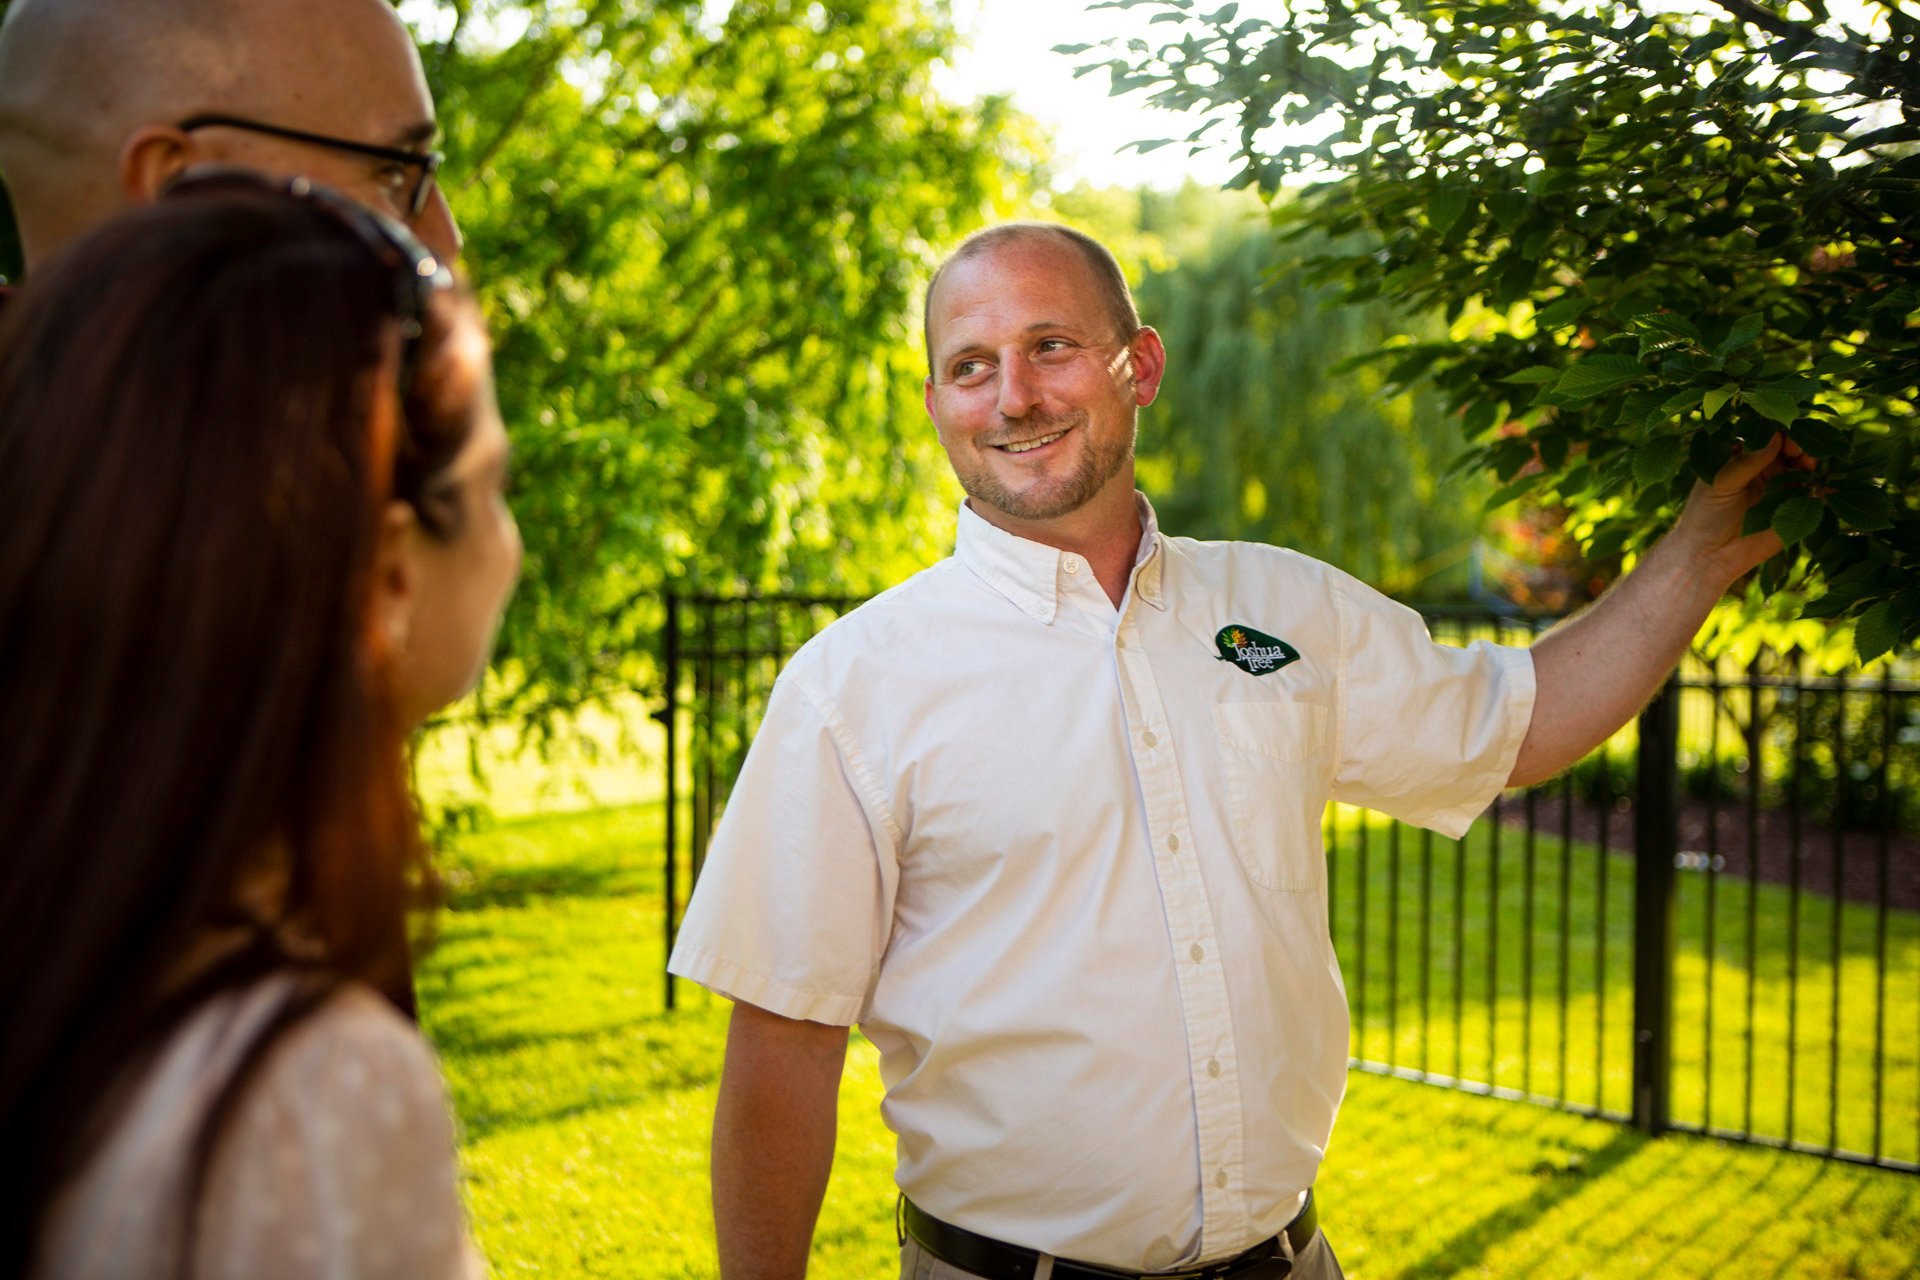 Joshua Tree lawn care and landscape employee